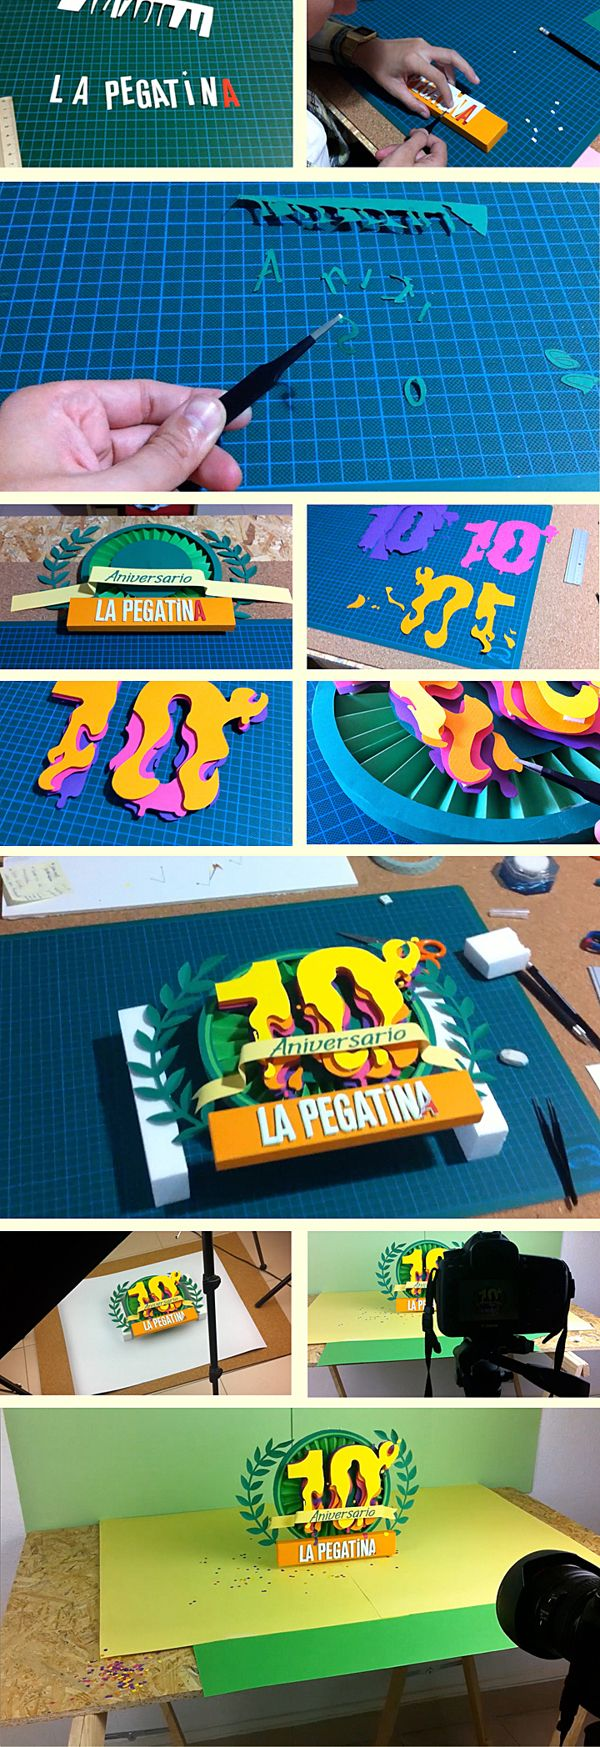 LA PEGATINA by Noelia Lozano, via Behance